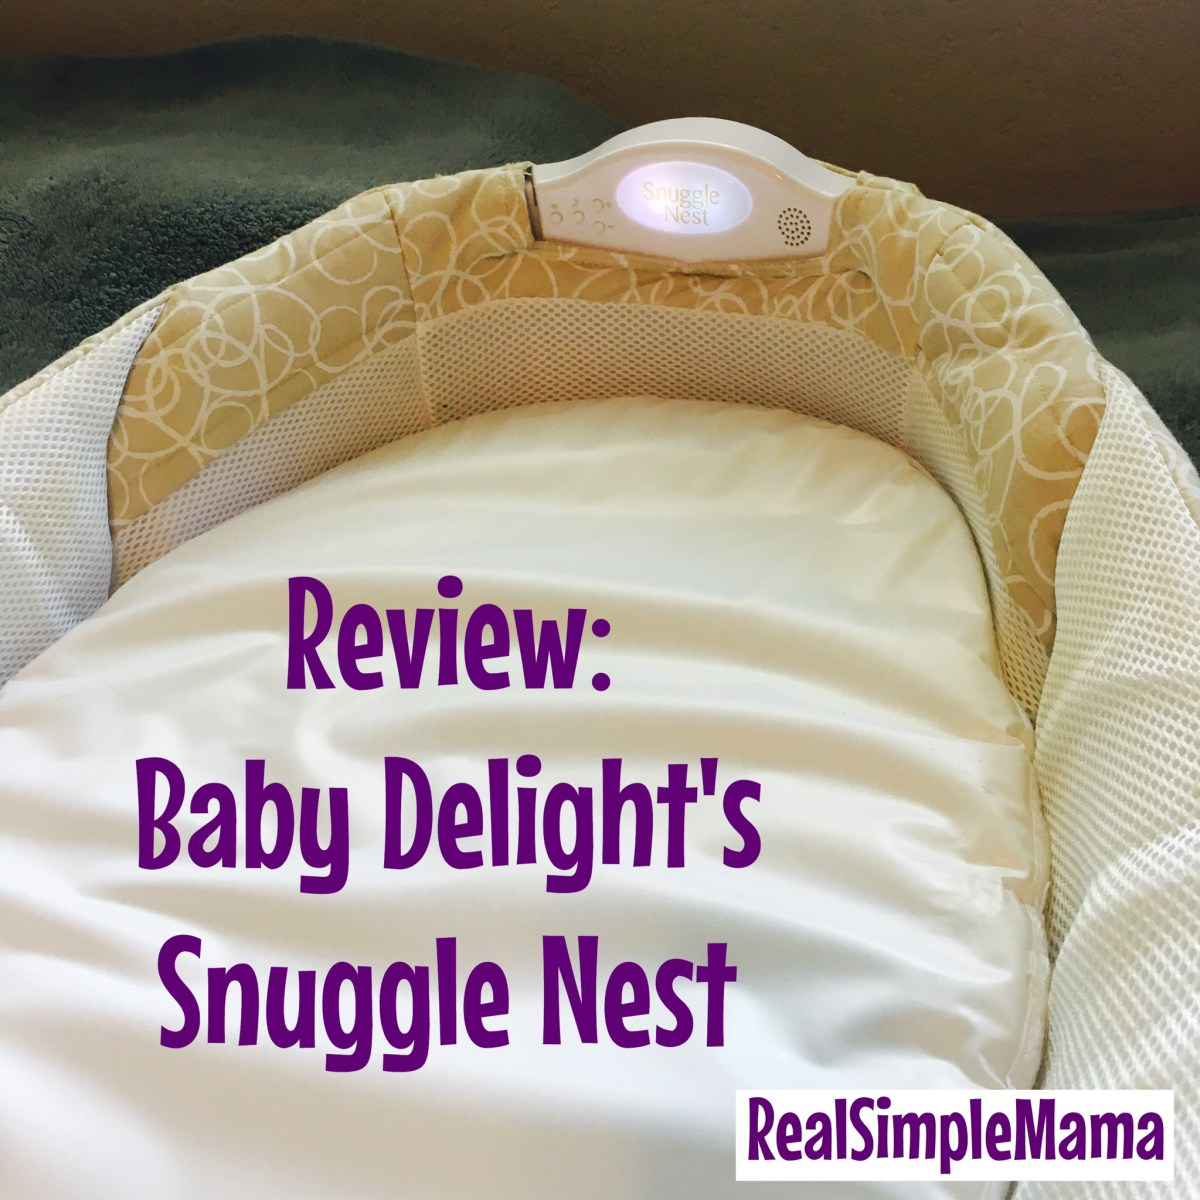 Review: Baby Delight's Snuggle Nest